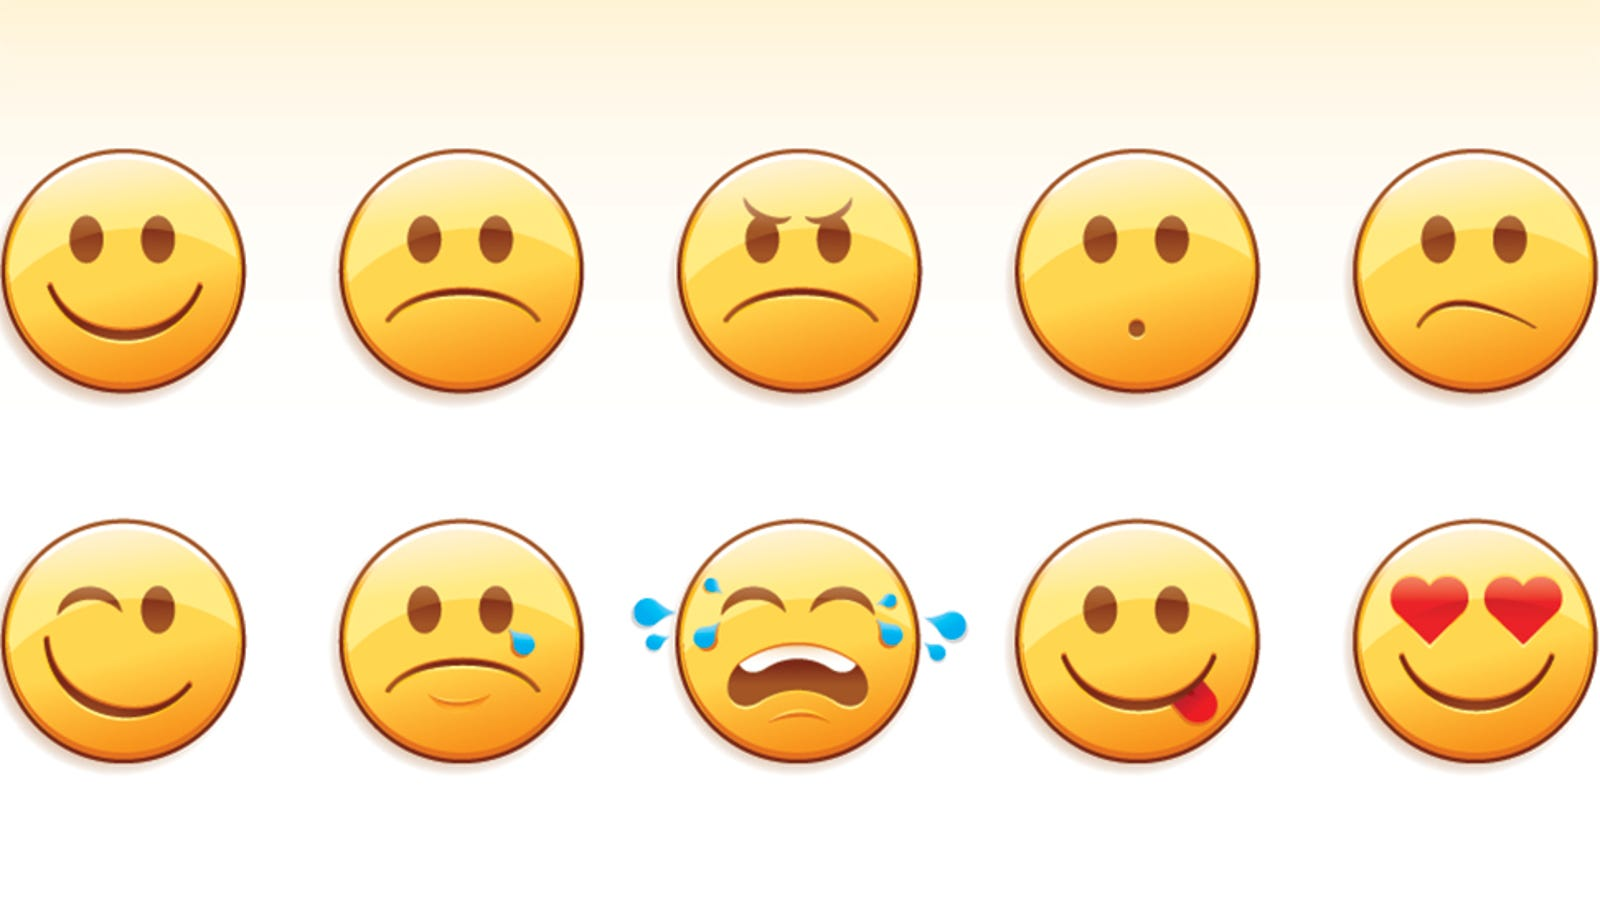 How Emojis Could Determine Your Place on the Autism Spectrum